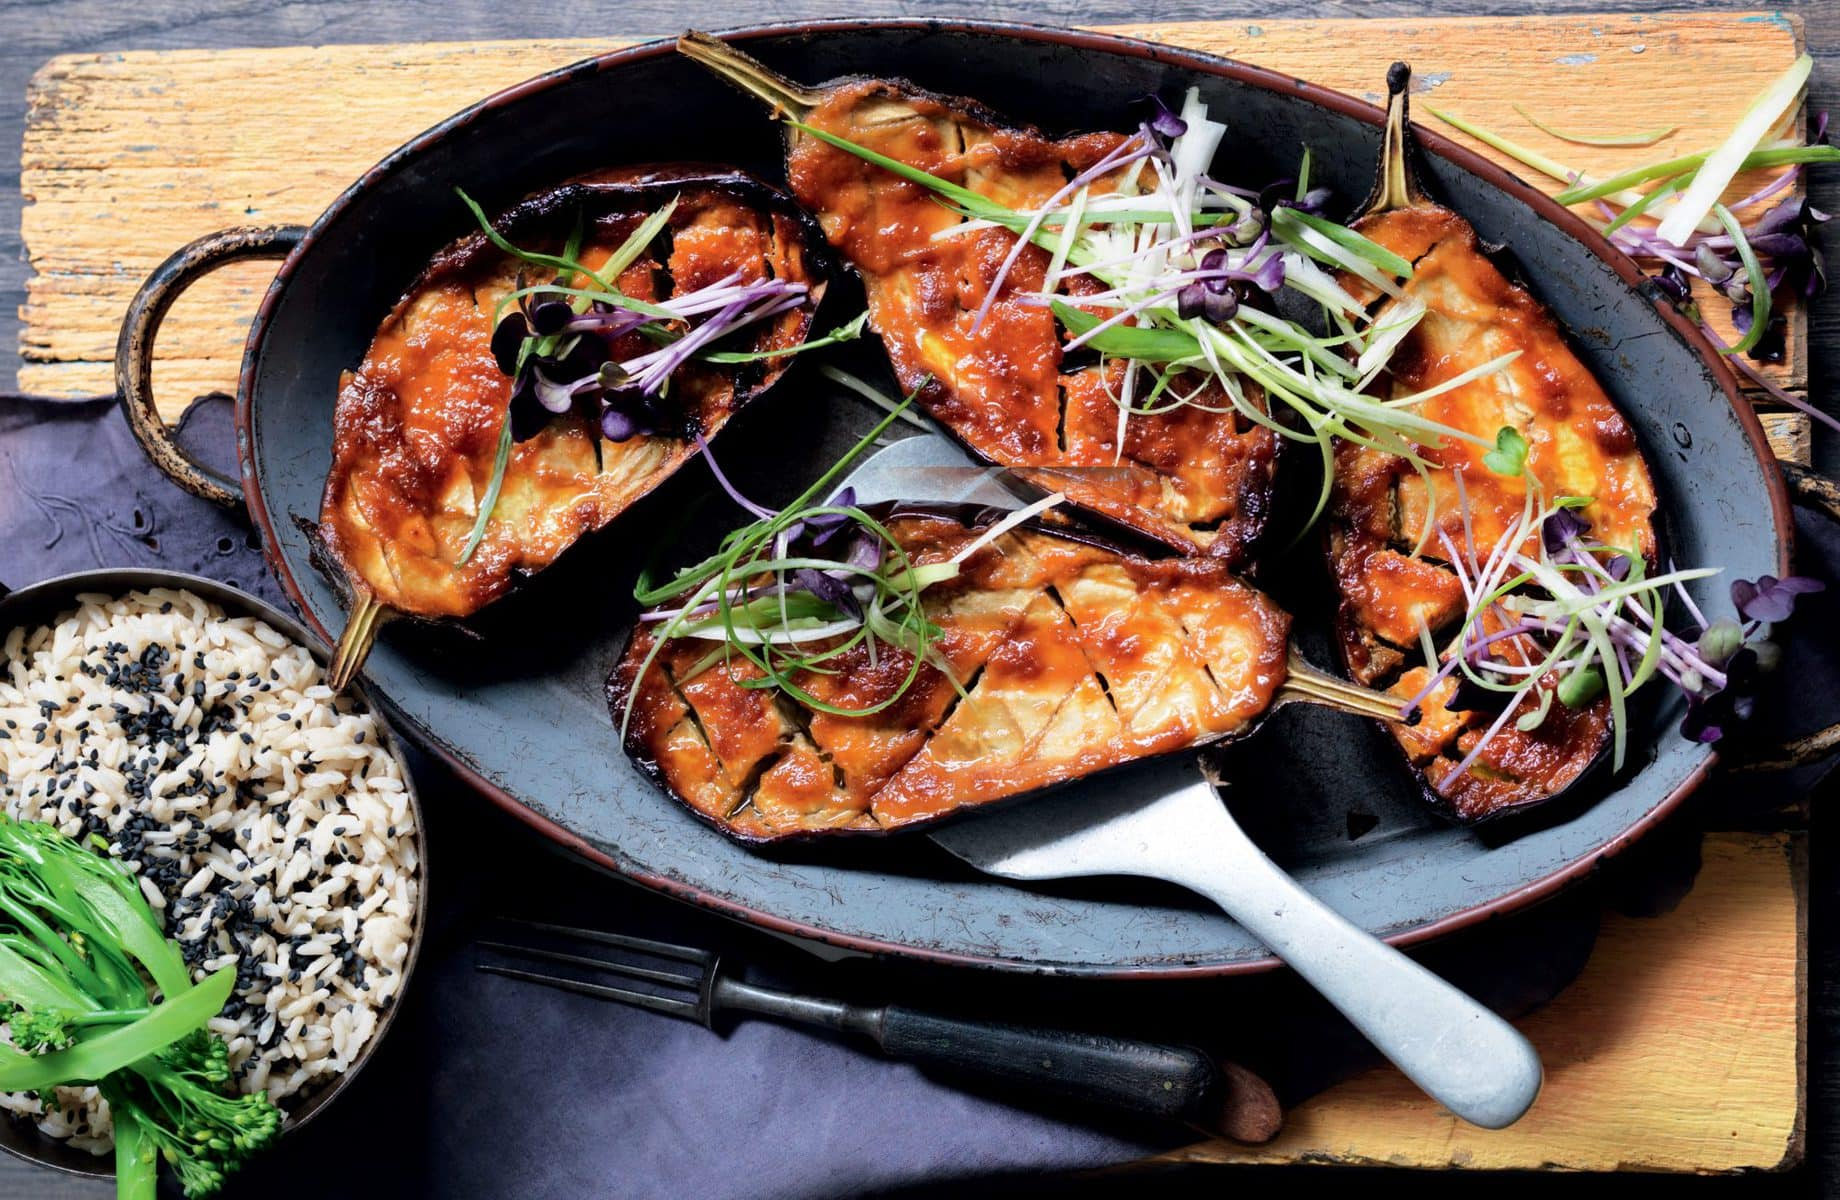 Miso-glazed roasted eggplant with sesame rice